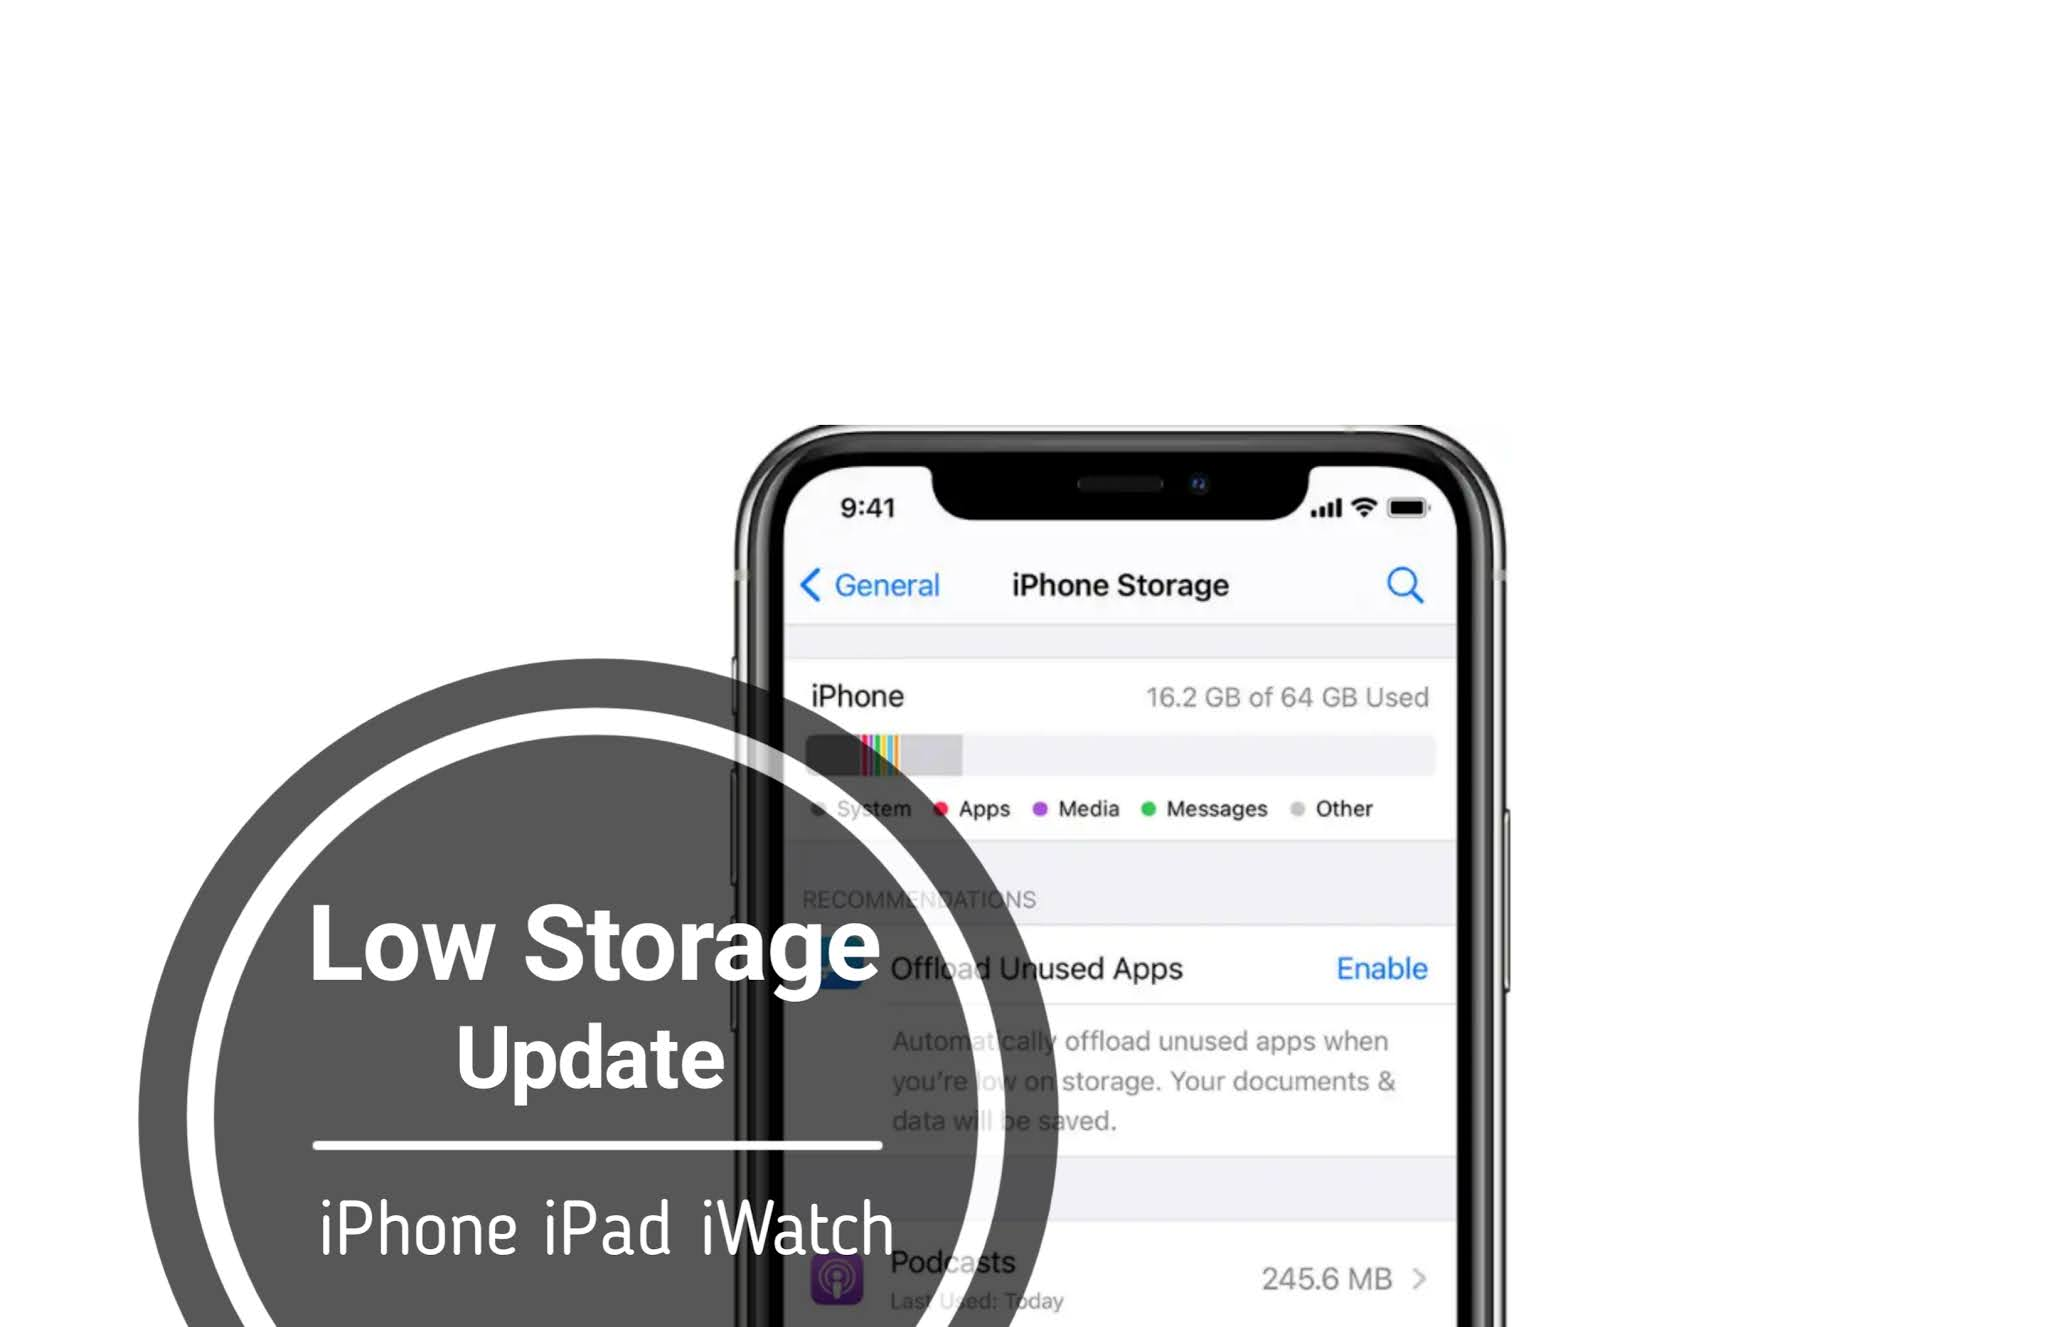 How To Update Your iPhone, iPad With Low Storage Available